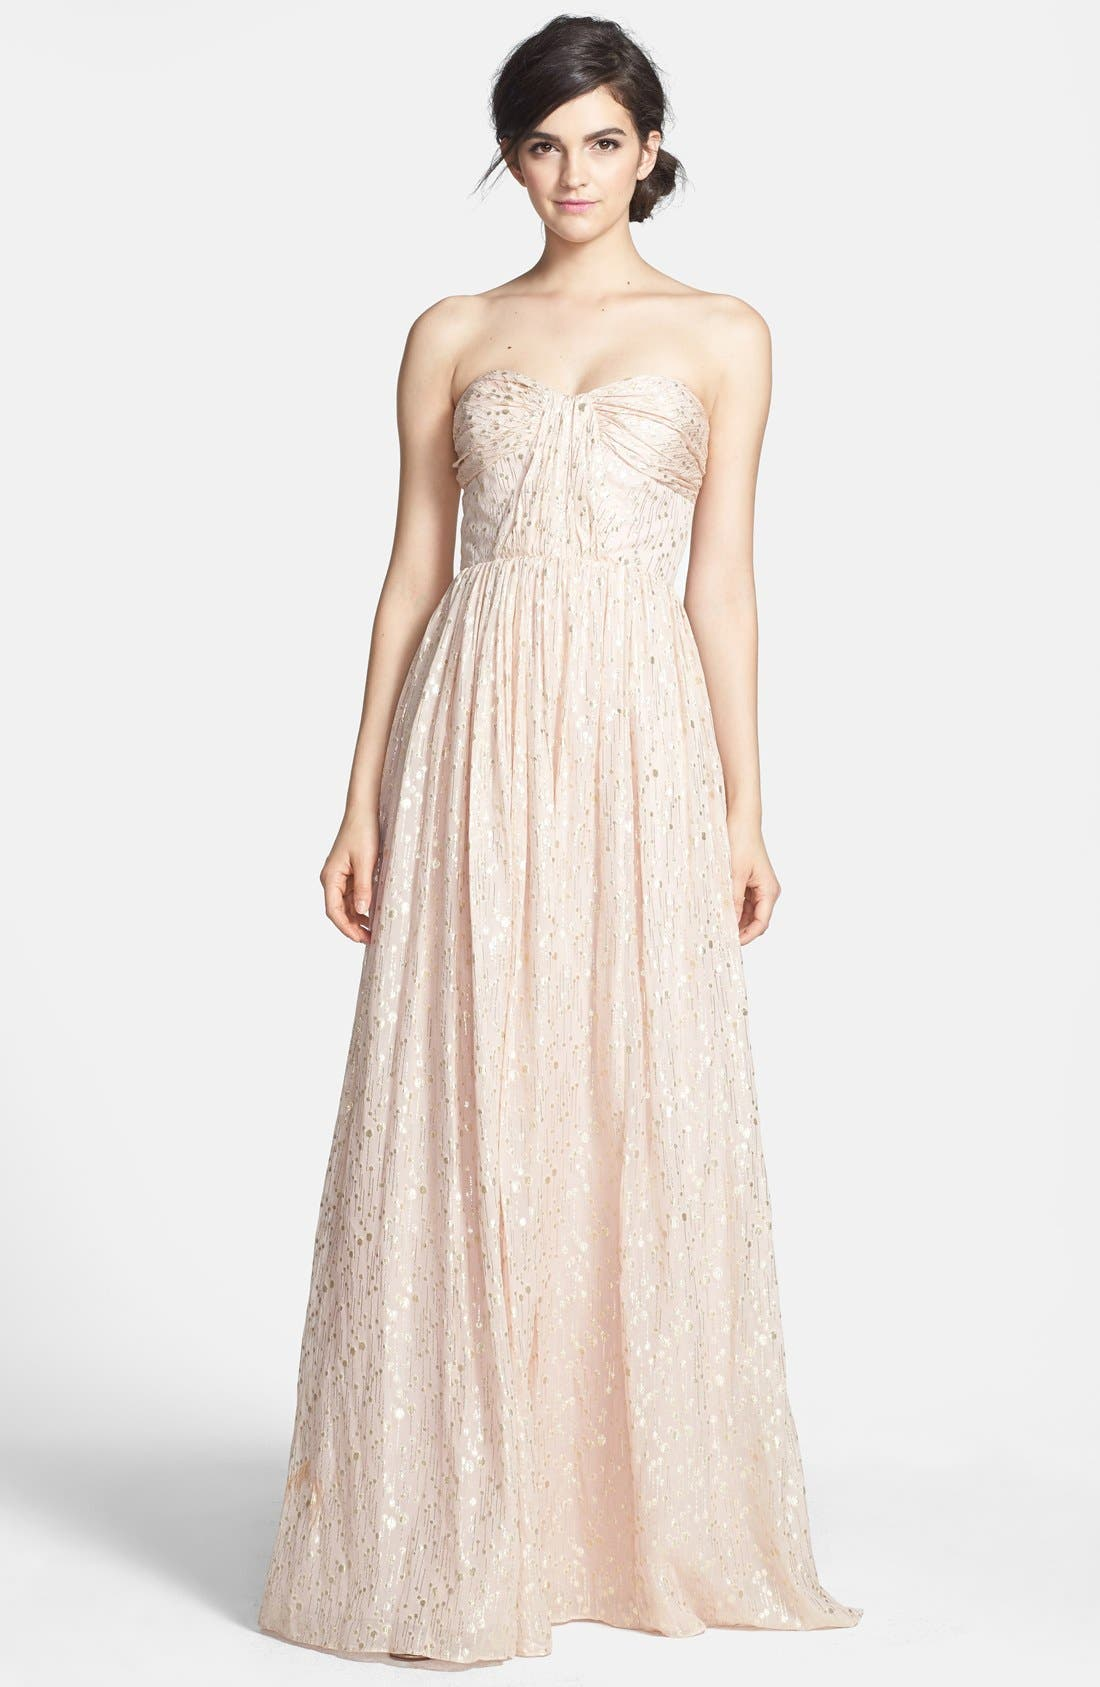 ERIN ERIN FETHERSTON 'Coralie' Foiled Silk Chiffon Gown, Main, color, 689